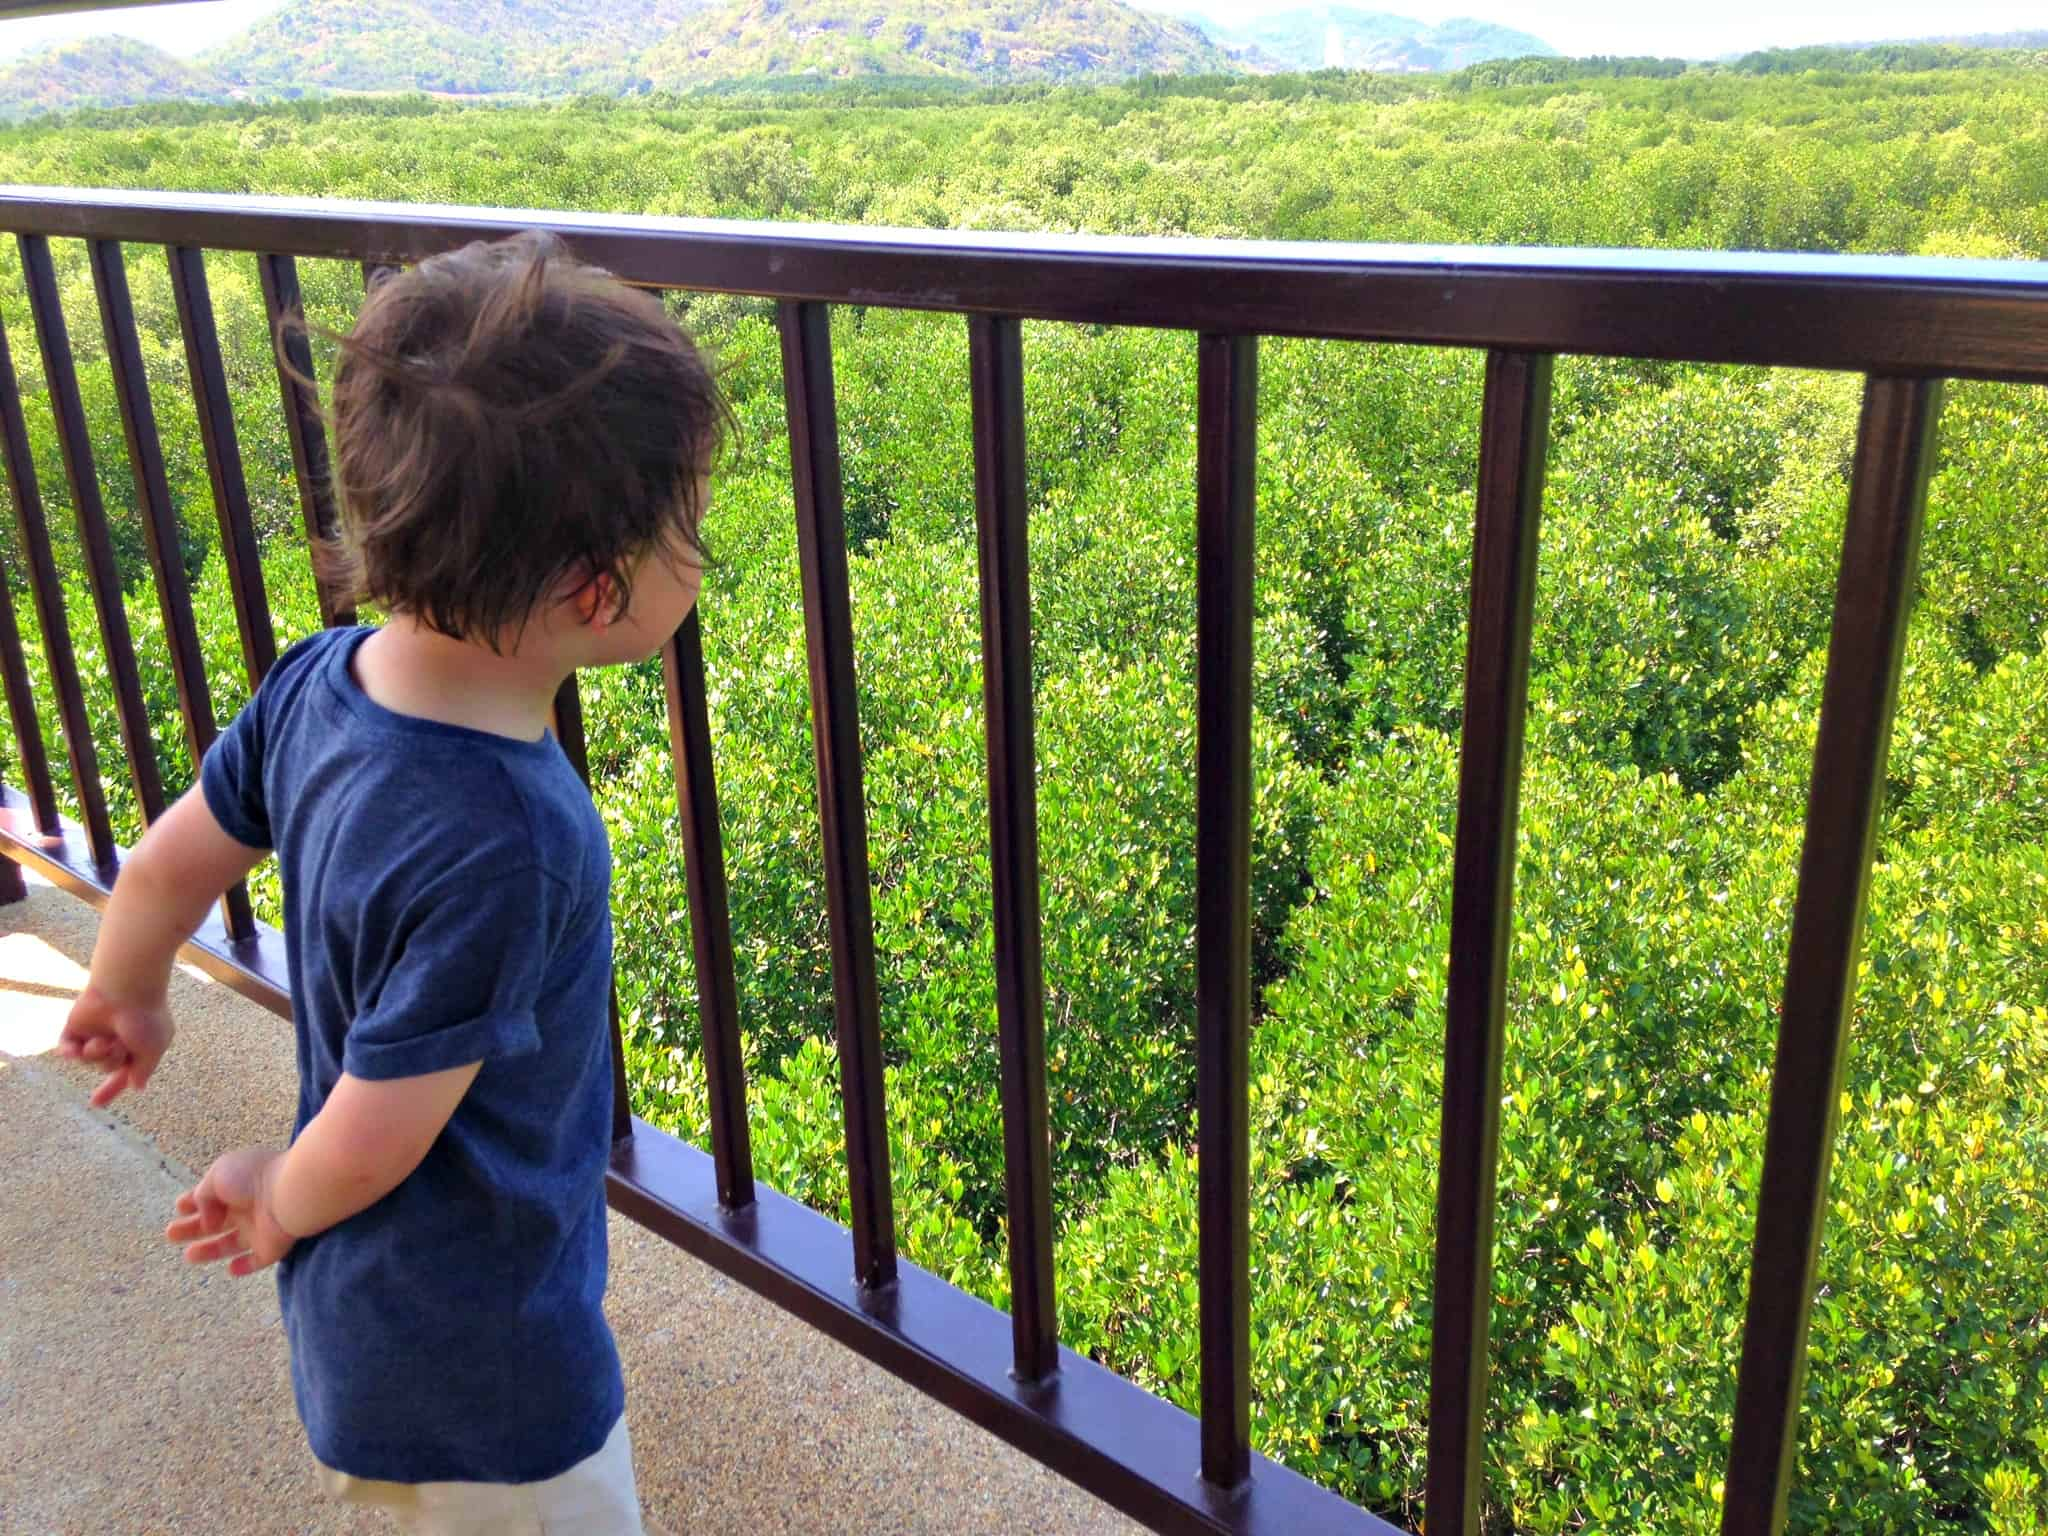 At the Pranburi Mangrove Forest Viewing Deck | My Travel Monkey